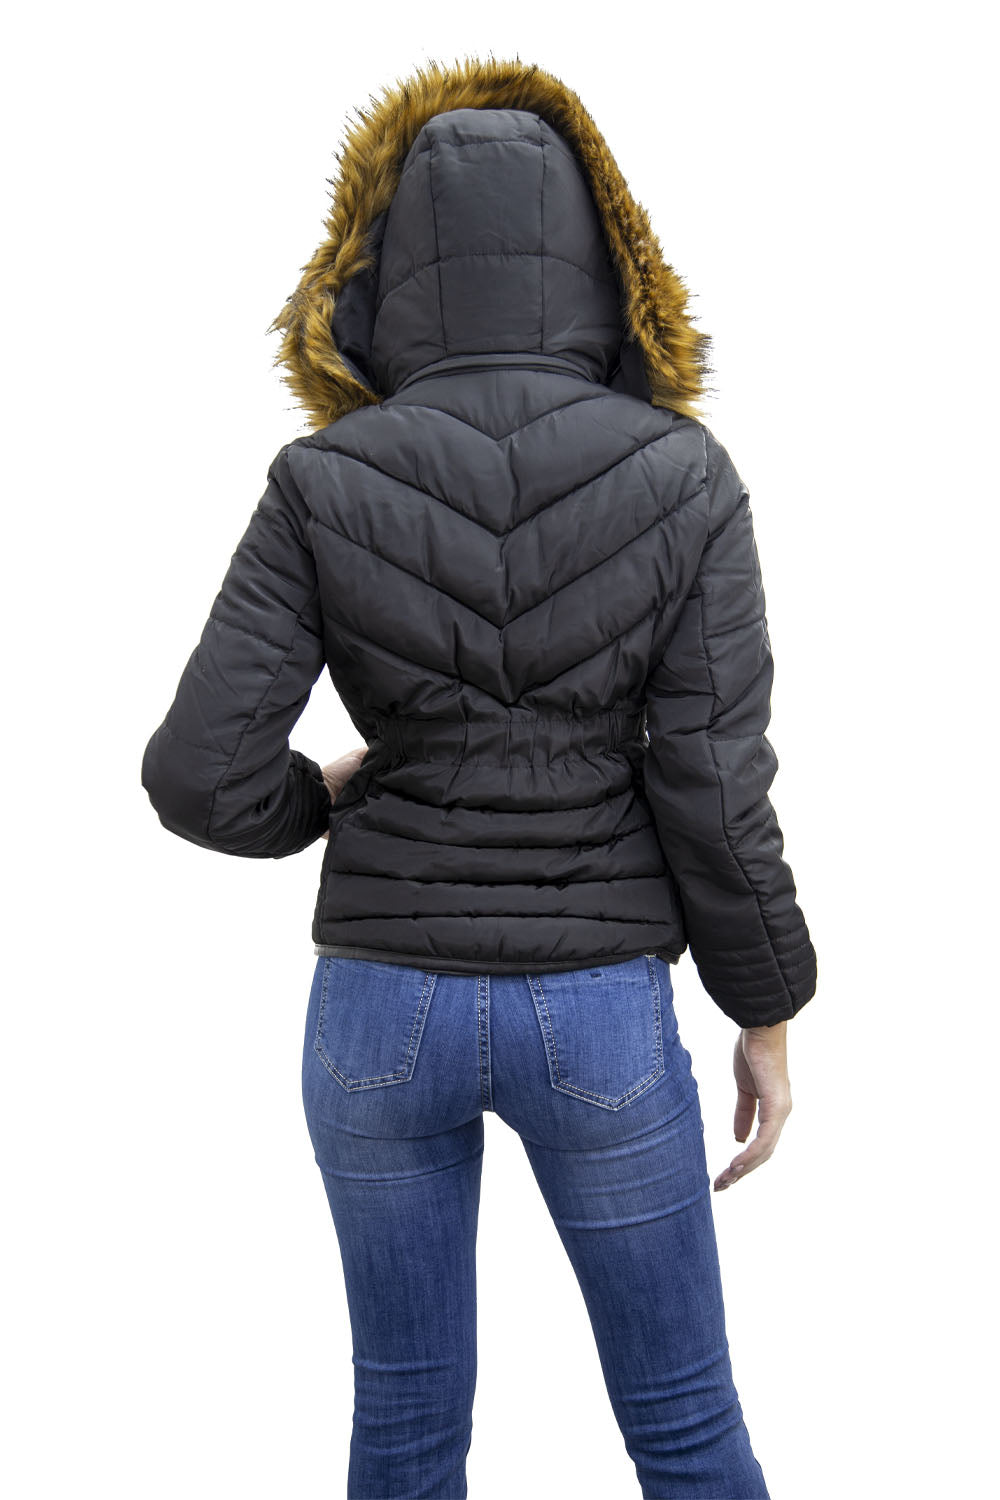 Black Faux Fur Hood Puffer Jacket - Serena